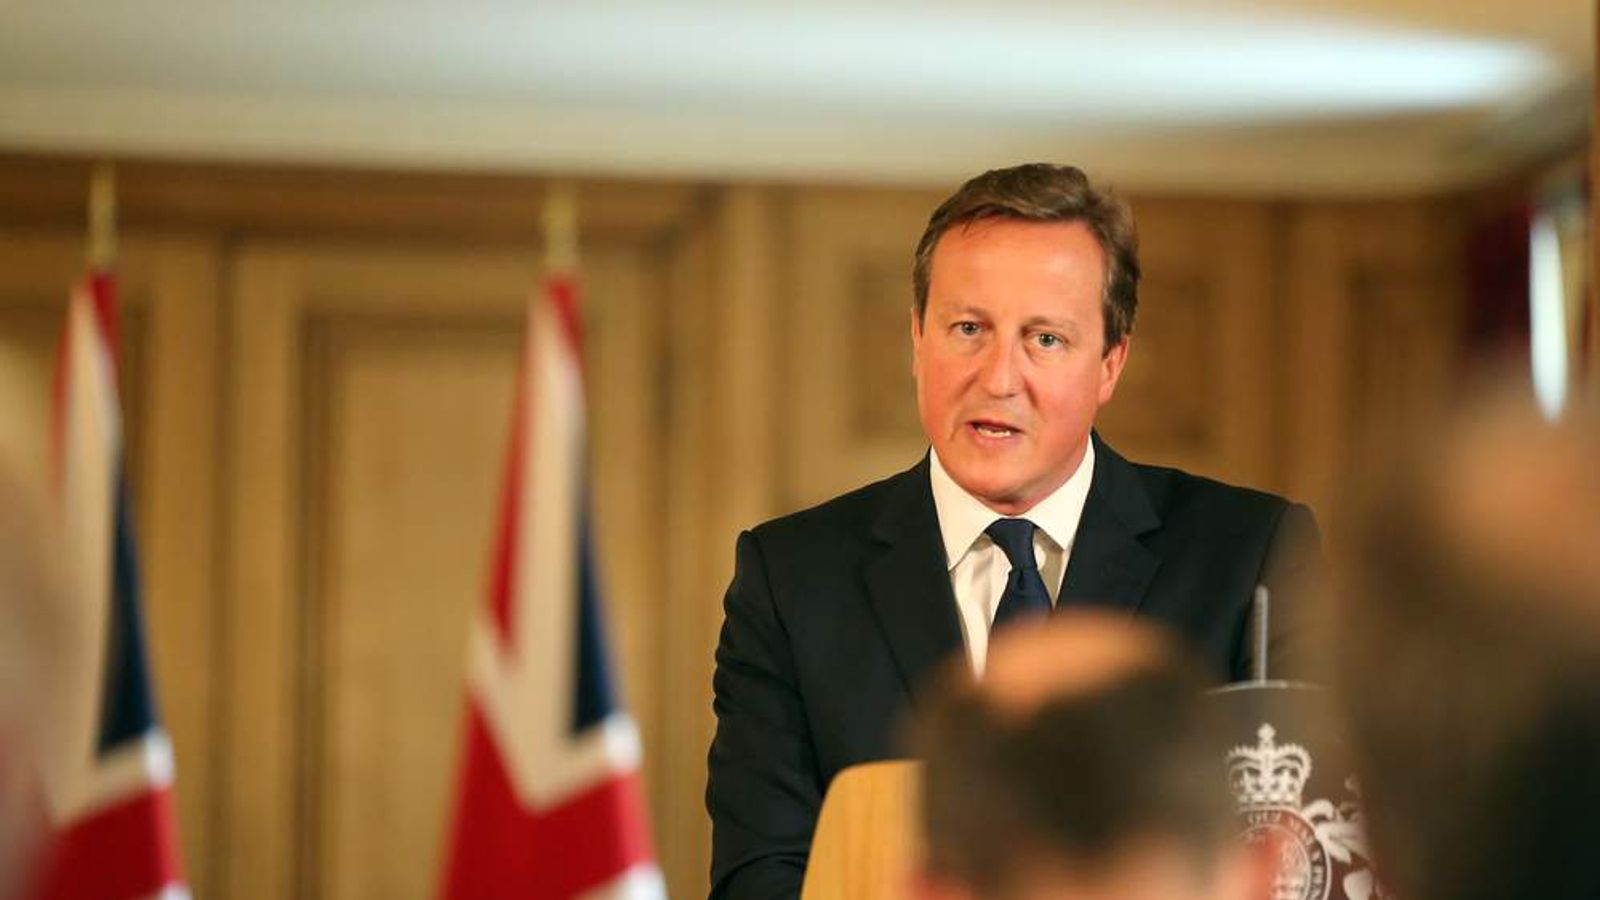 Britain's Prime Minister David Cameron speaks at a news conference in Downing Street, central London